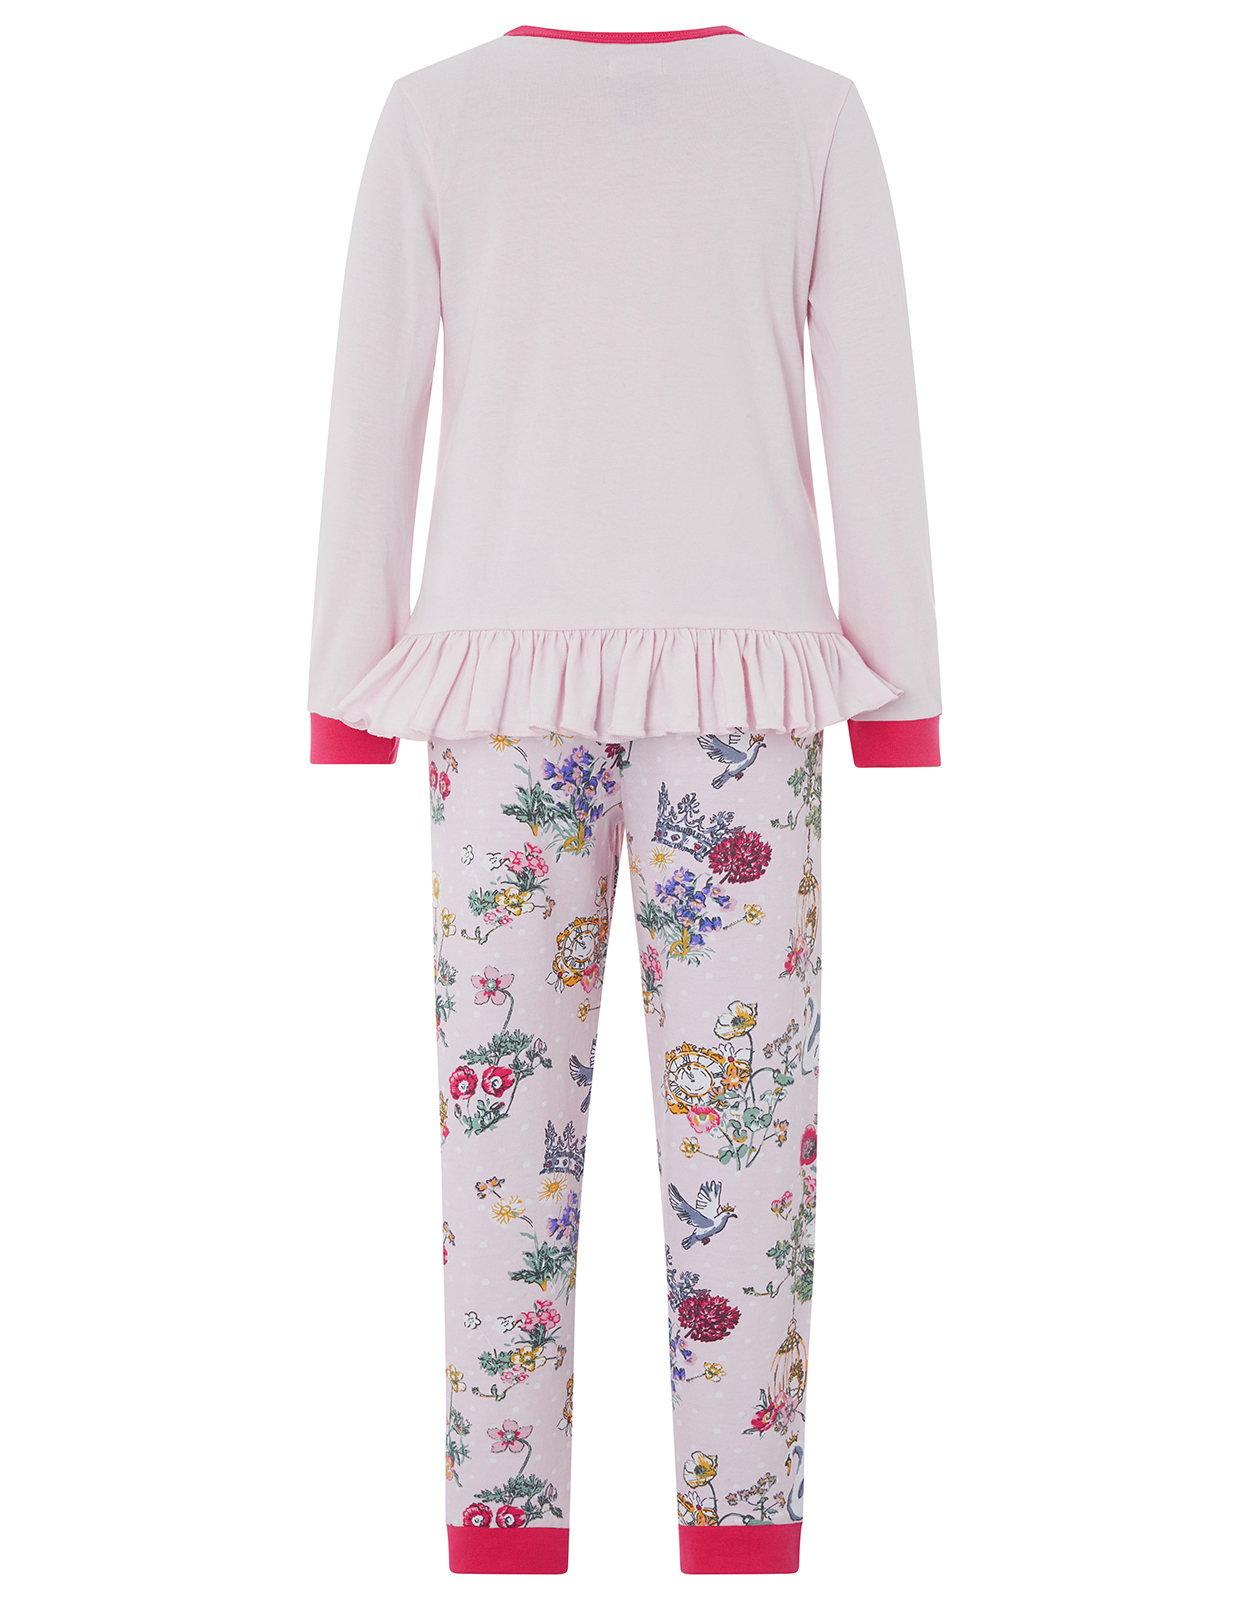 Monsoon Avery Jersey Pyjama Set